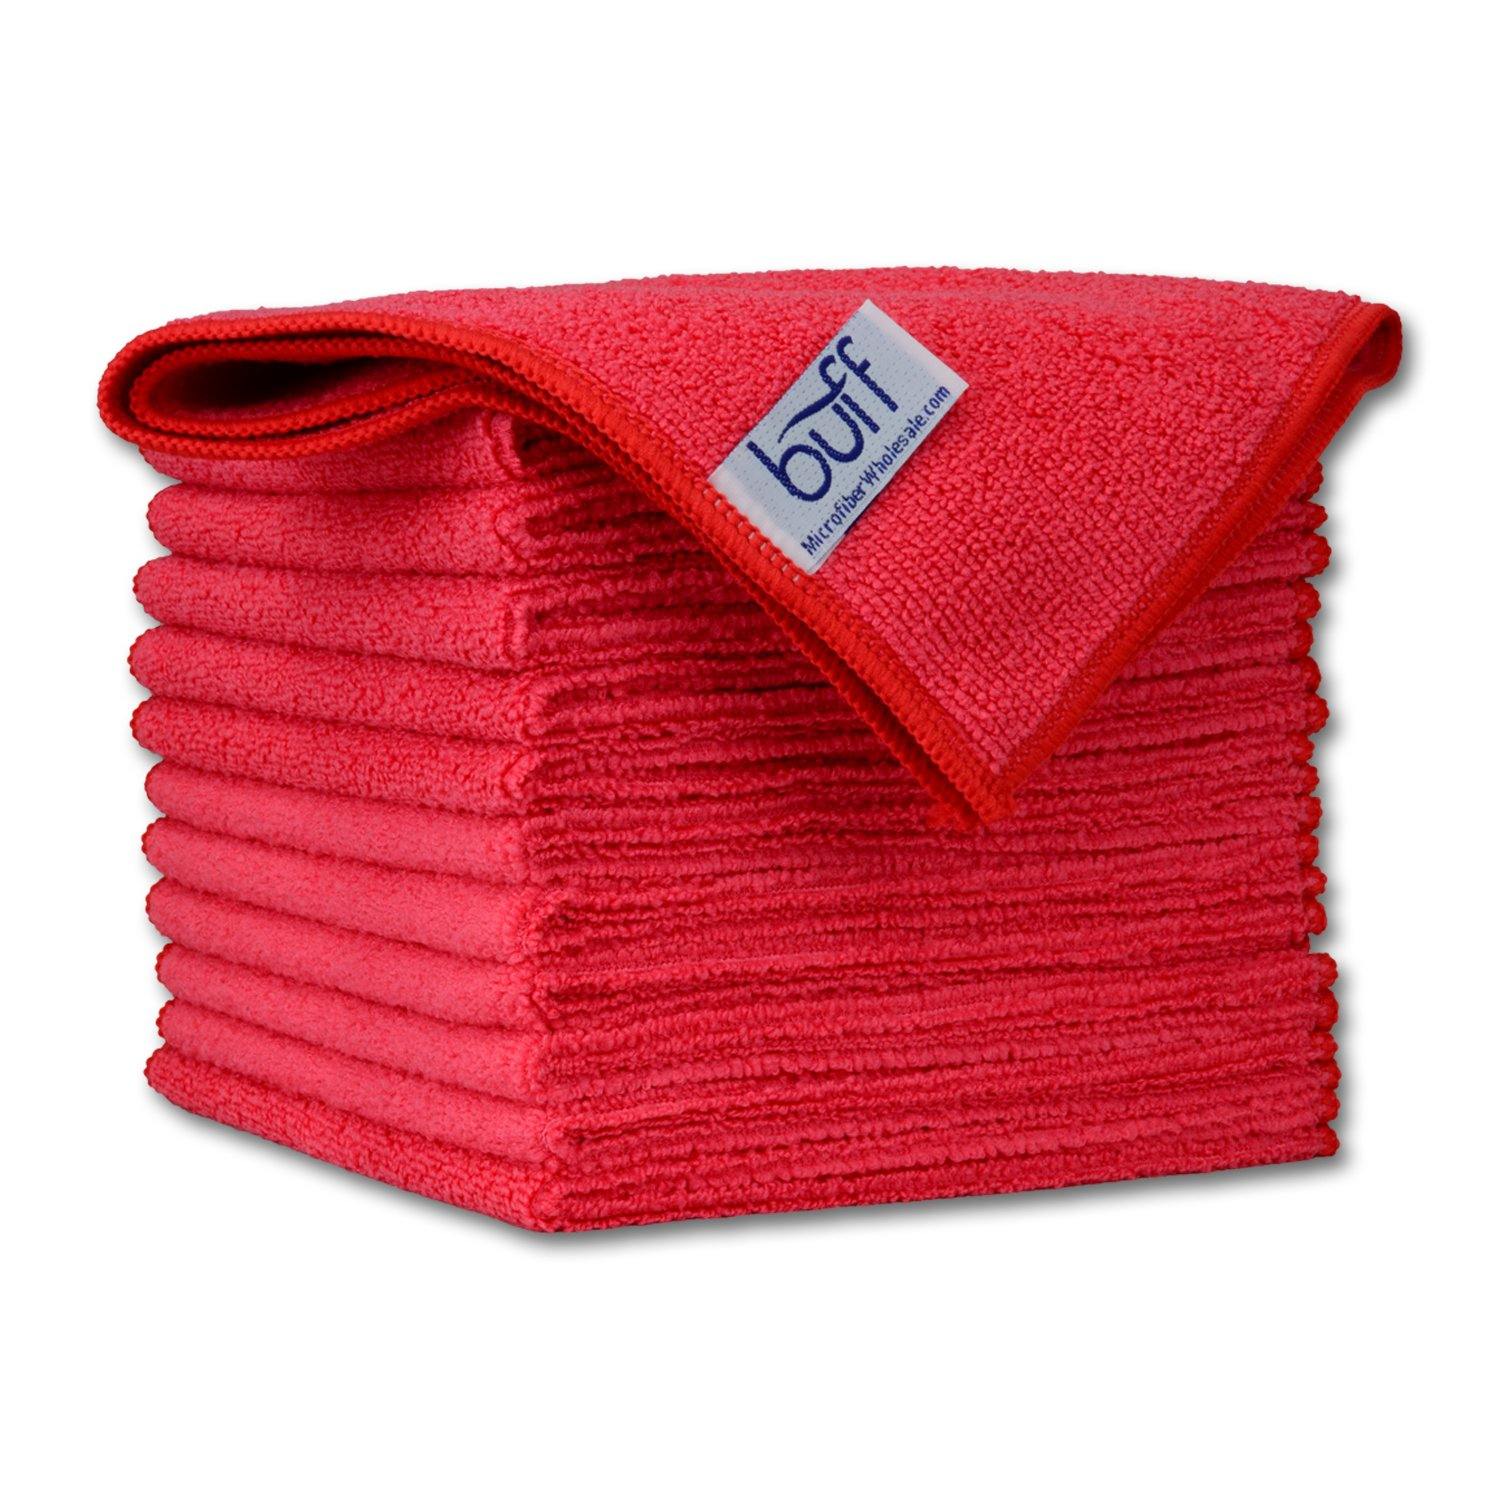 12'' x 12'' Buff Pro Multi-Surface Microfiber Cleaning Cloths | Red - 12 Pack | Premium Microfiber Towels for Cleaning Glass, Kitchens, Bathrooms, Automotive